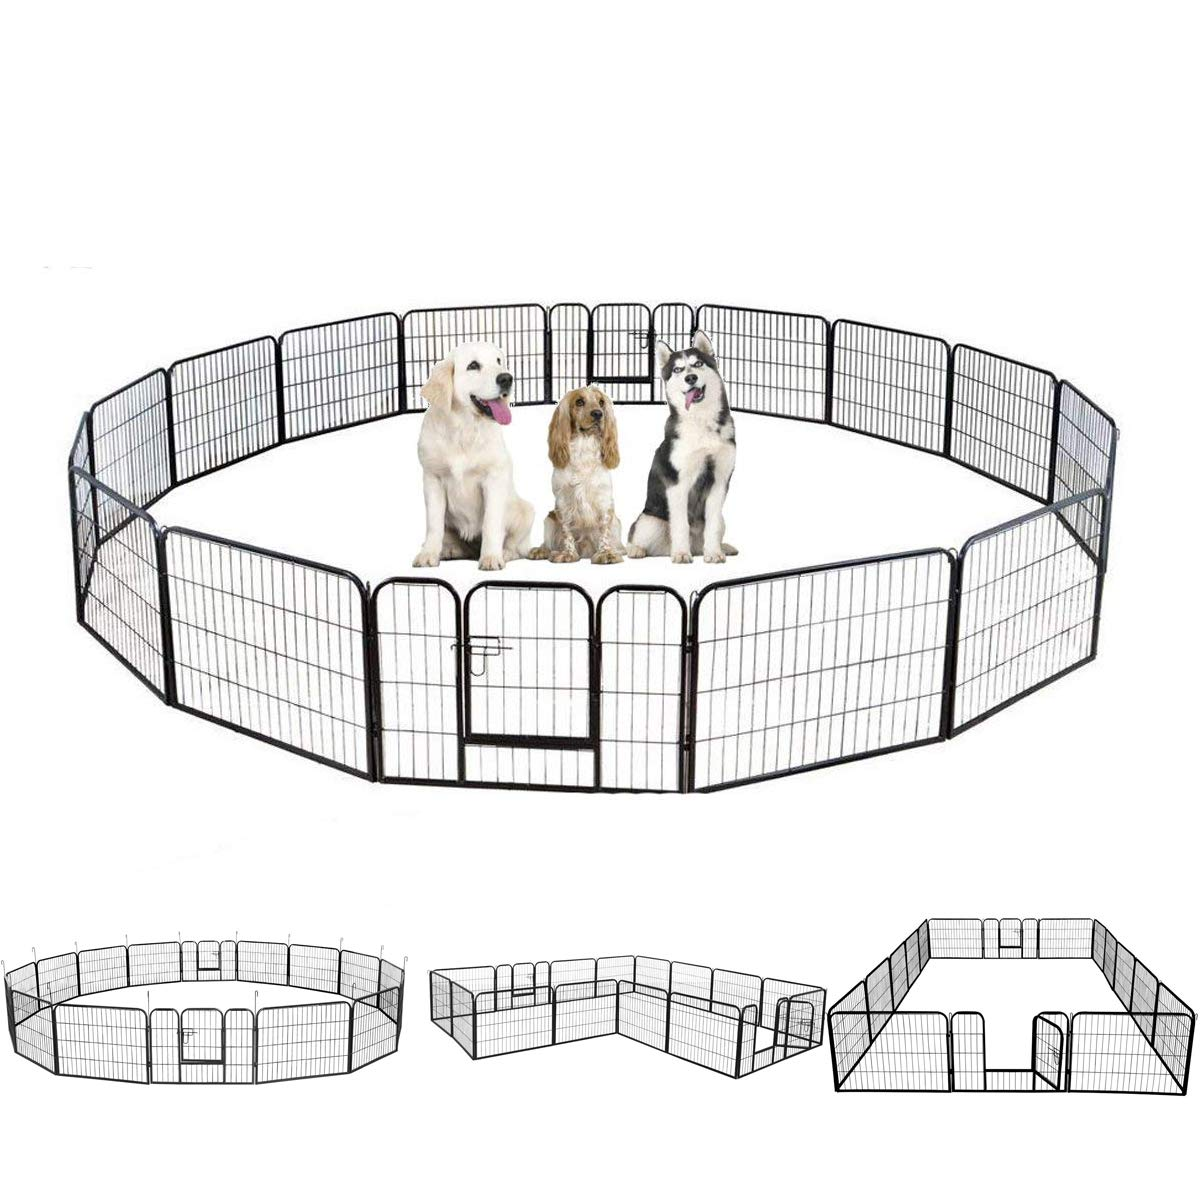 Belovedkai Dog Puppy Playpen, Crate Fence Pet Kennel 16 Panel Exercise Cage Wire Enclosure for Indoor Outdoor